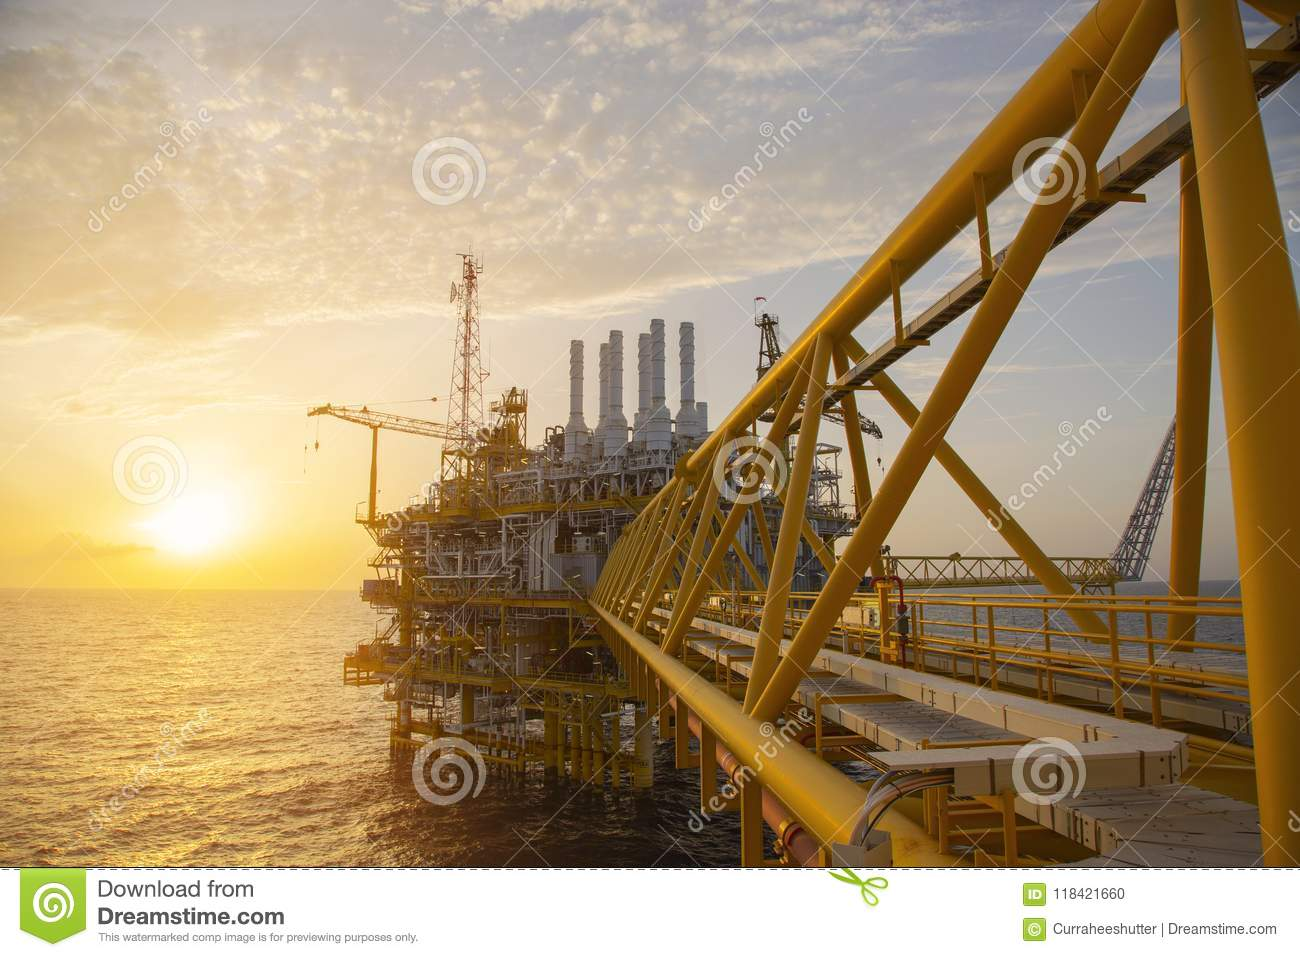 Offshore construction platform for production oil and gas. Oil and gas industry and hard work. Production platform and operation